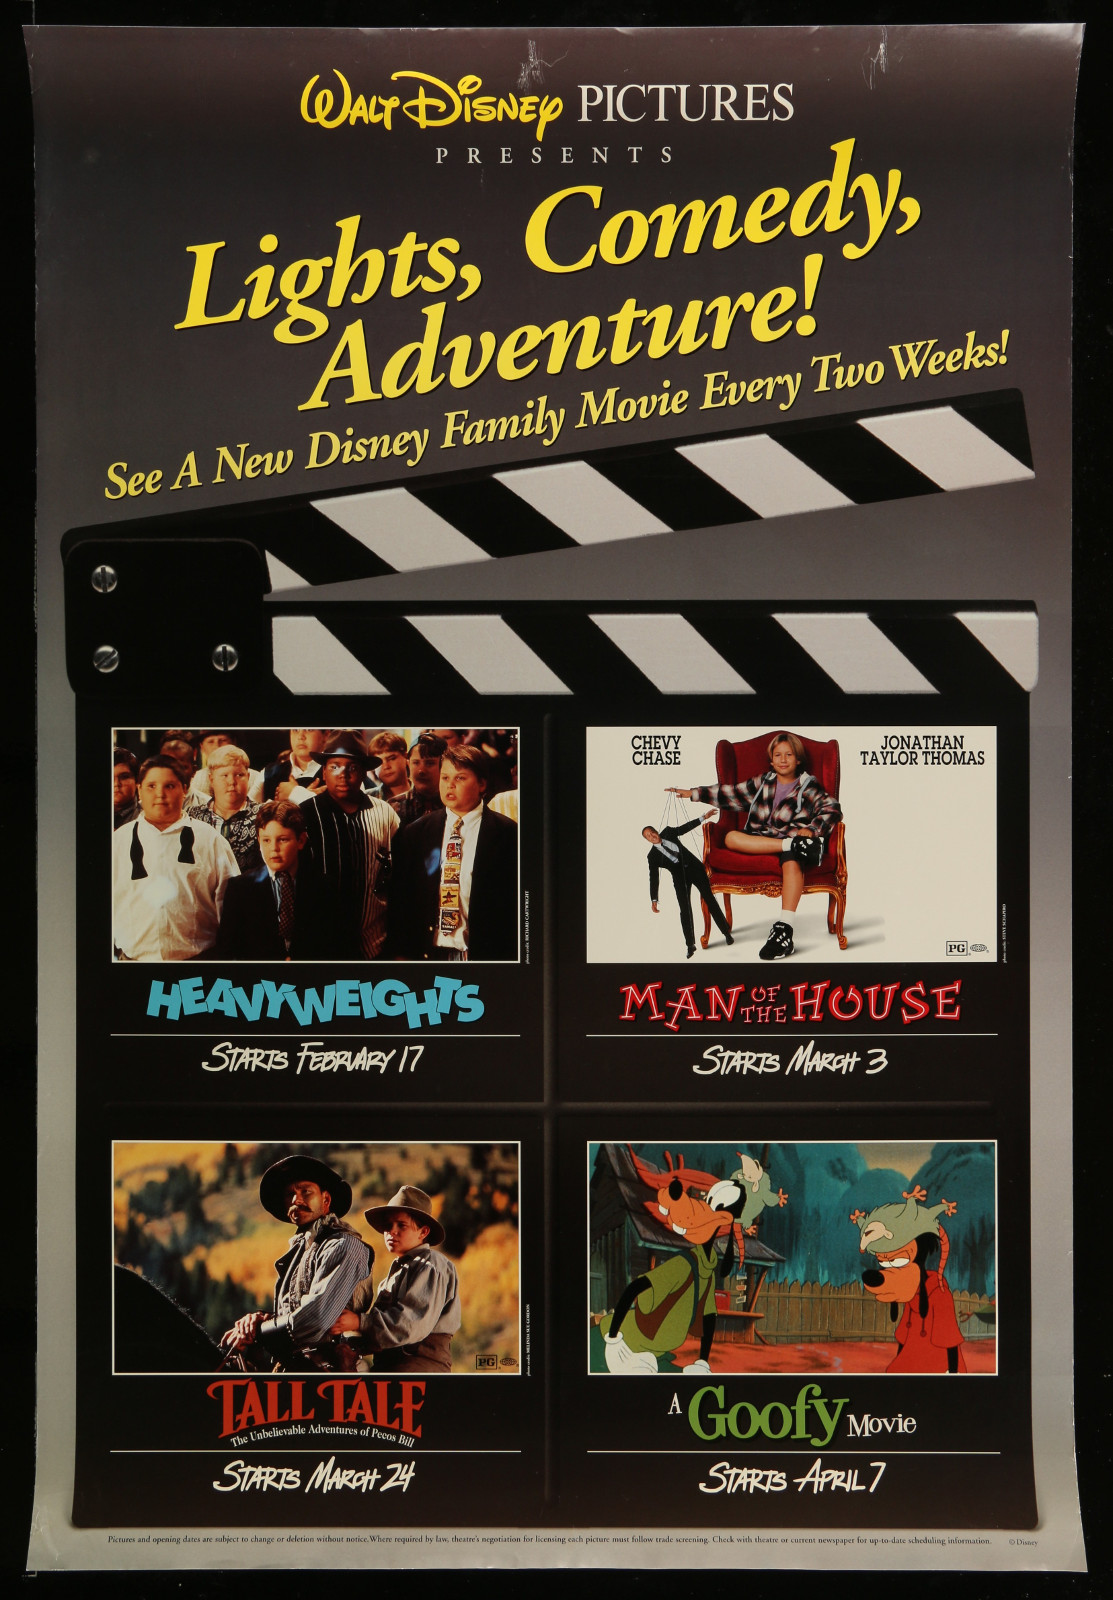 Lights, Comedy, Adventure! Walt Disney Family Movies: Heavyweights, Man Of The House, Tall Tale, A Goofy Movie 2A396 A Part Of A Lot 22 Unfolded Mostly Double-Sided 27X40 One-Sheets '00S A Variety Of Movie Images!